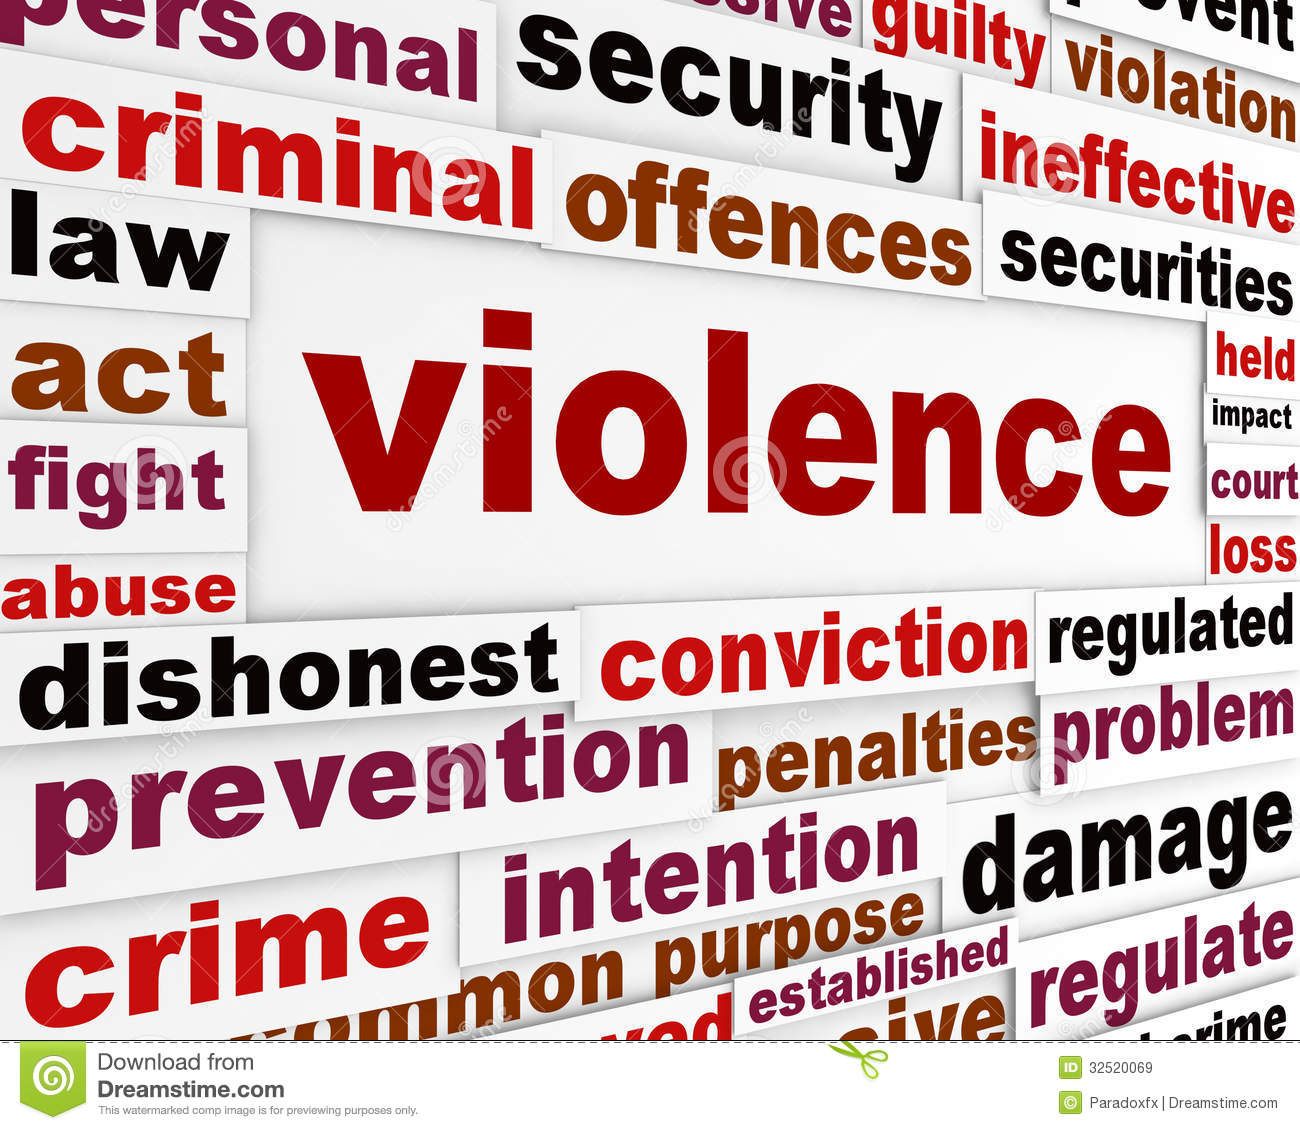 crime and violent criminal tendencies Cite article goodwin v & davis b 2011 crime families: gender and the intergenerational transfer of criminal tendenciestrends & issues in crime and criminal justice no 414.